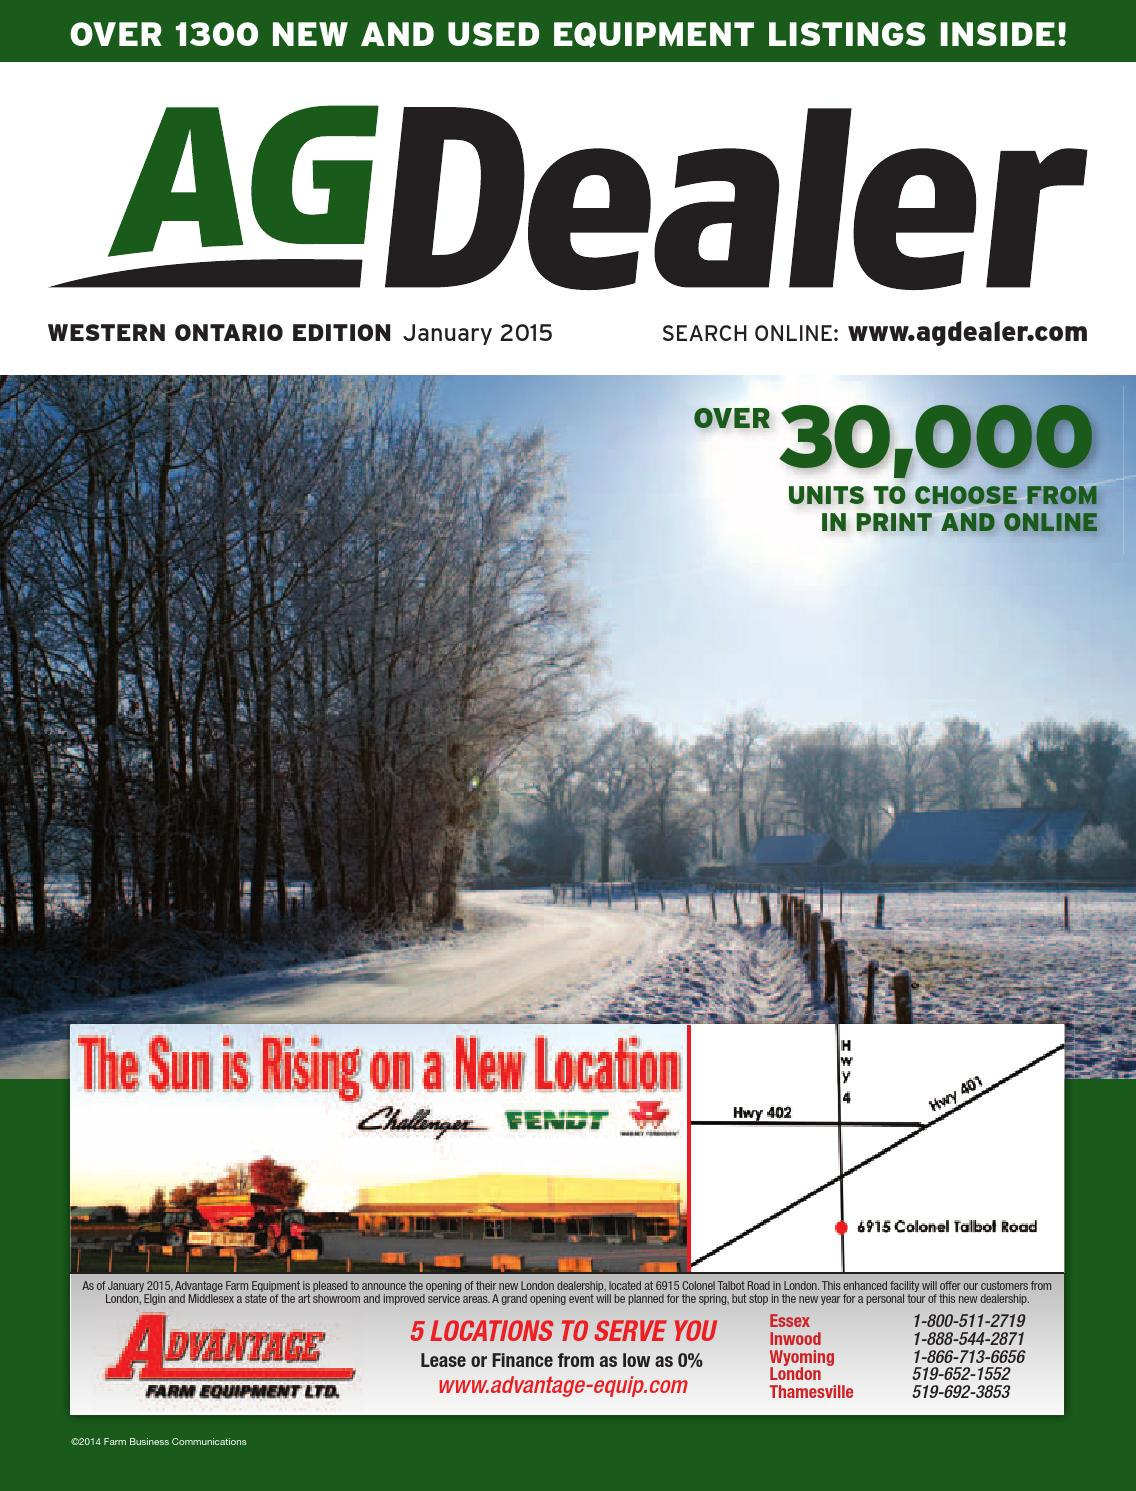 hight resolution of agdealer western ontario edition january 2015 by farm business communications issuu